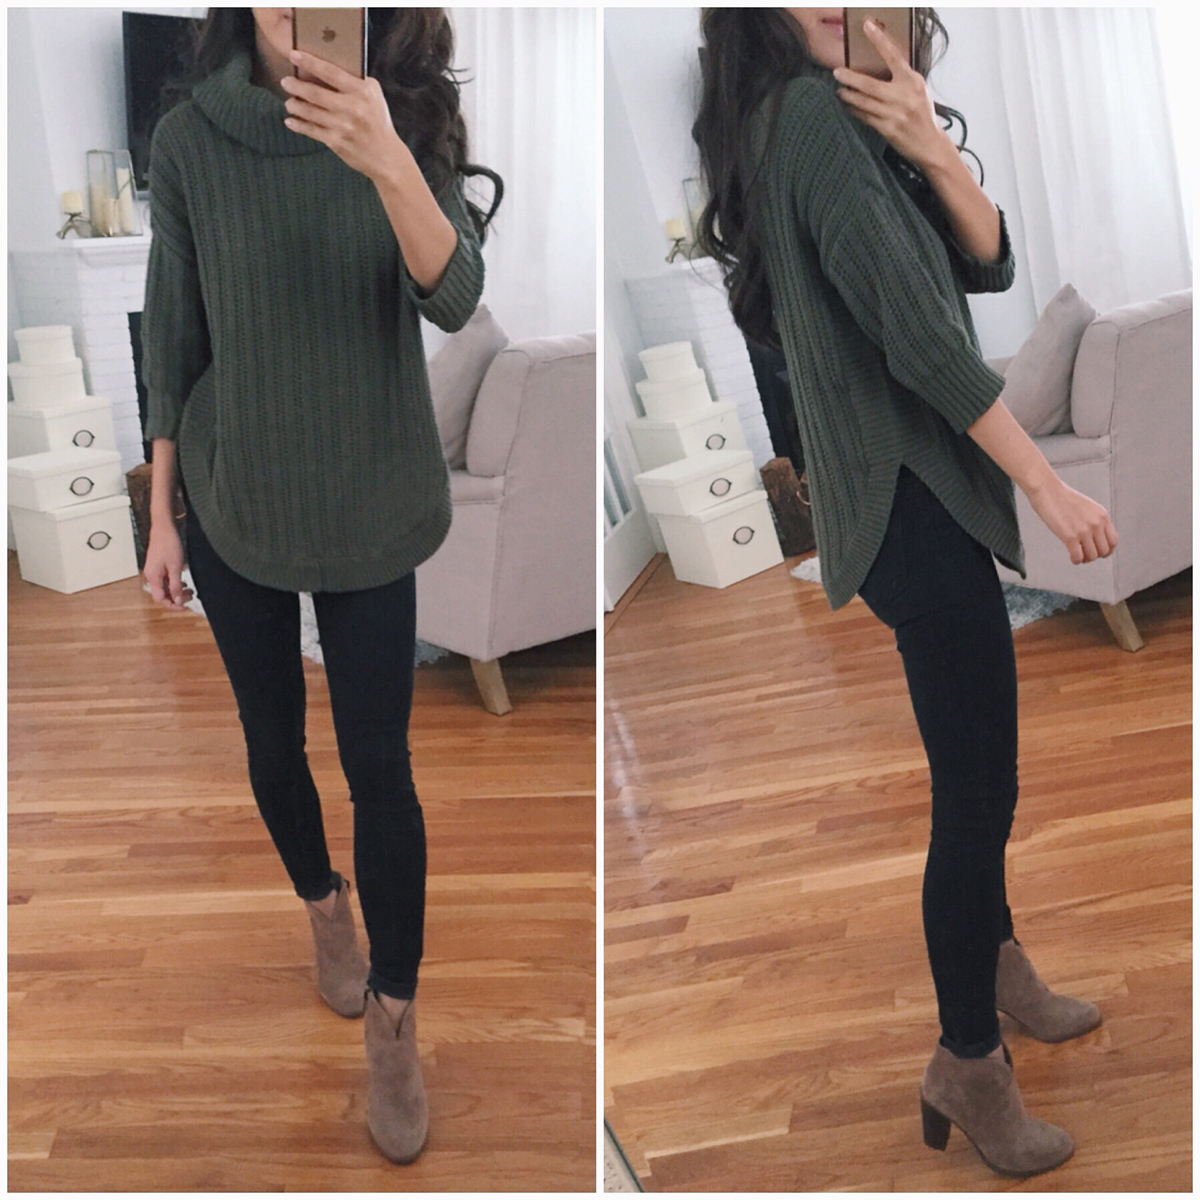 Faux leather skirt + Fall sale reviews (sweaters + boots!)